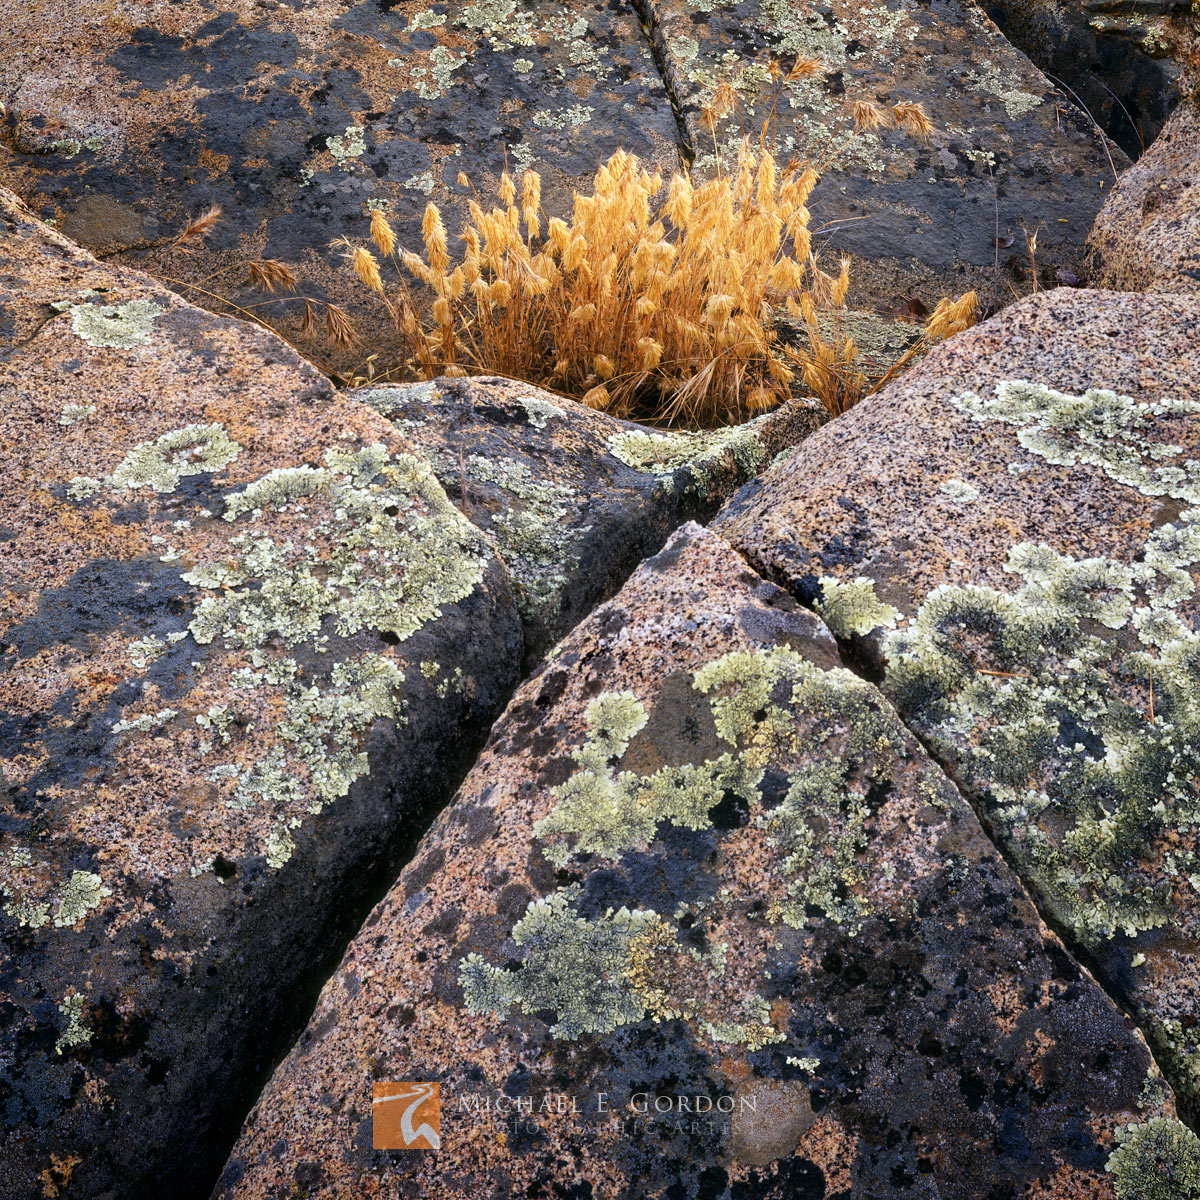 Dried, autumn, grasses, embrace, lichen, granite, Santa Rosa Plateau, California, photo